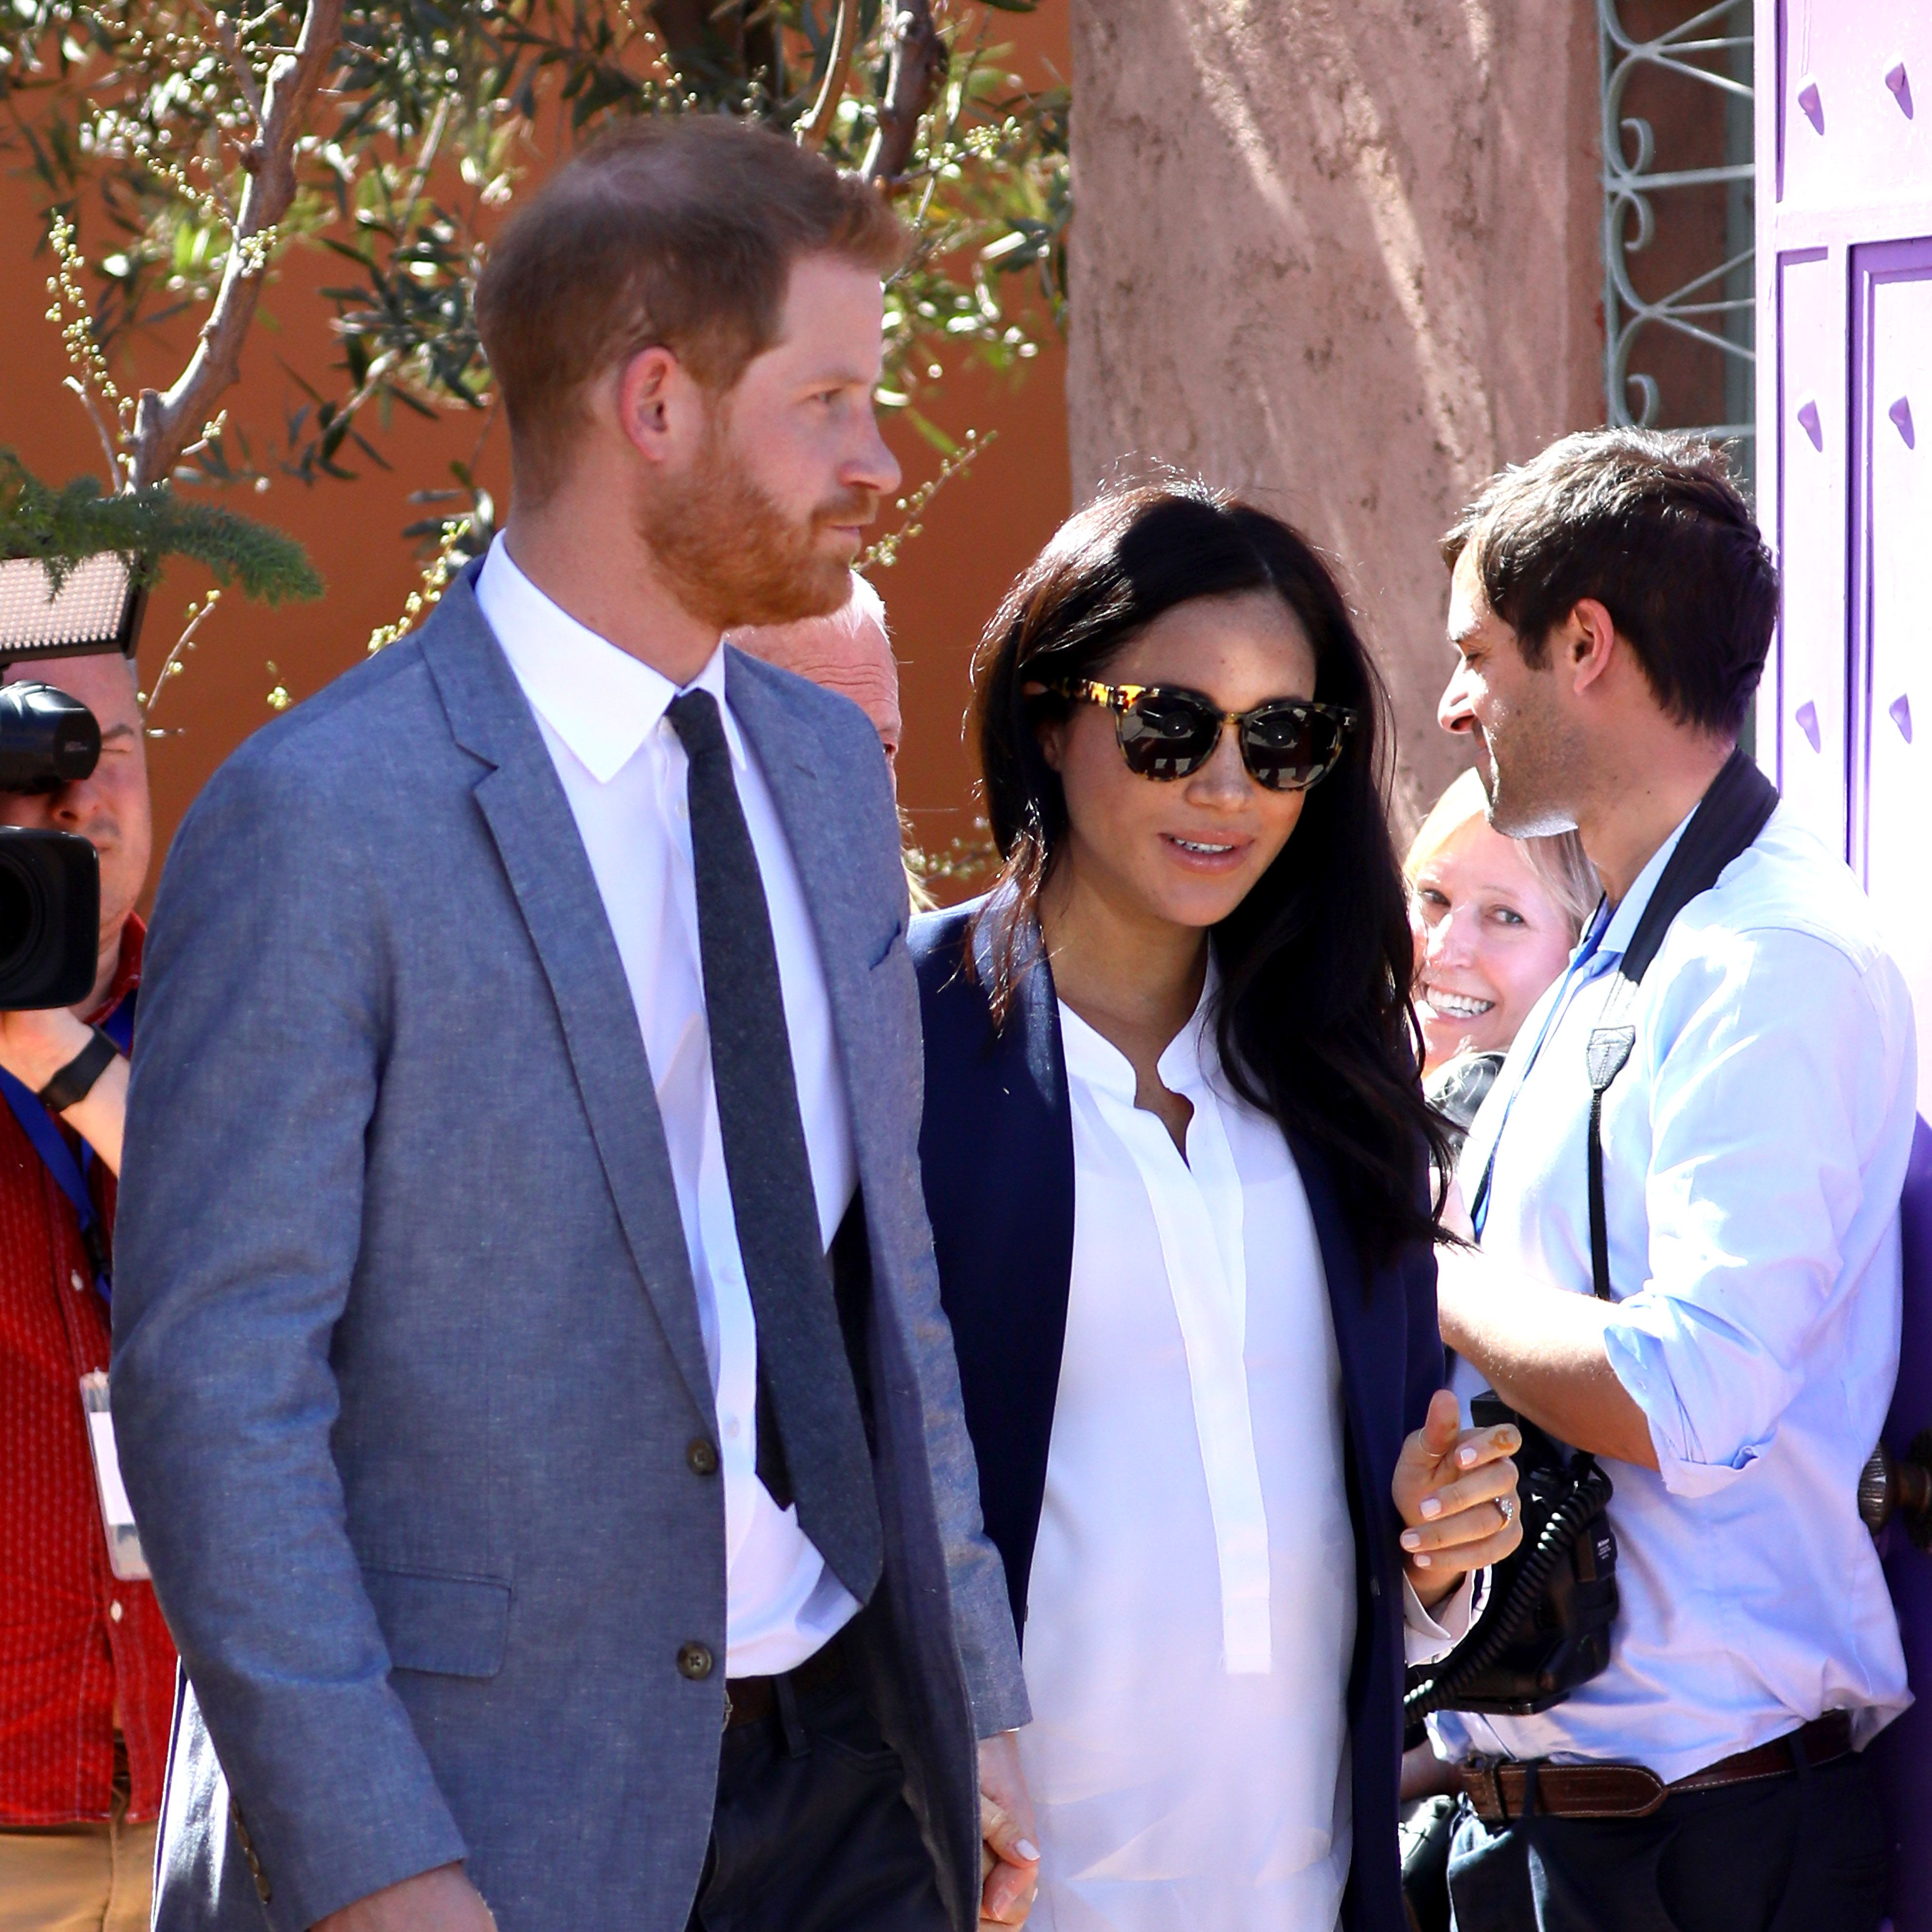 Meghan Markle Just Switched Her Flats for a Stunning Pair of Manolo Blahnik Pumps in Morocco